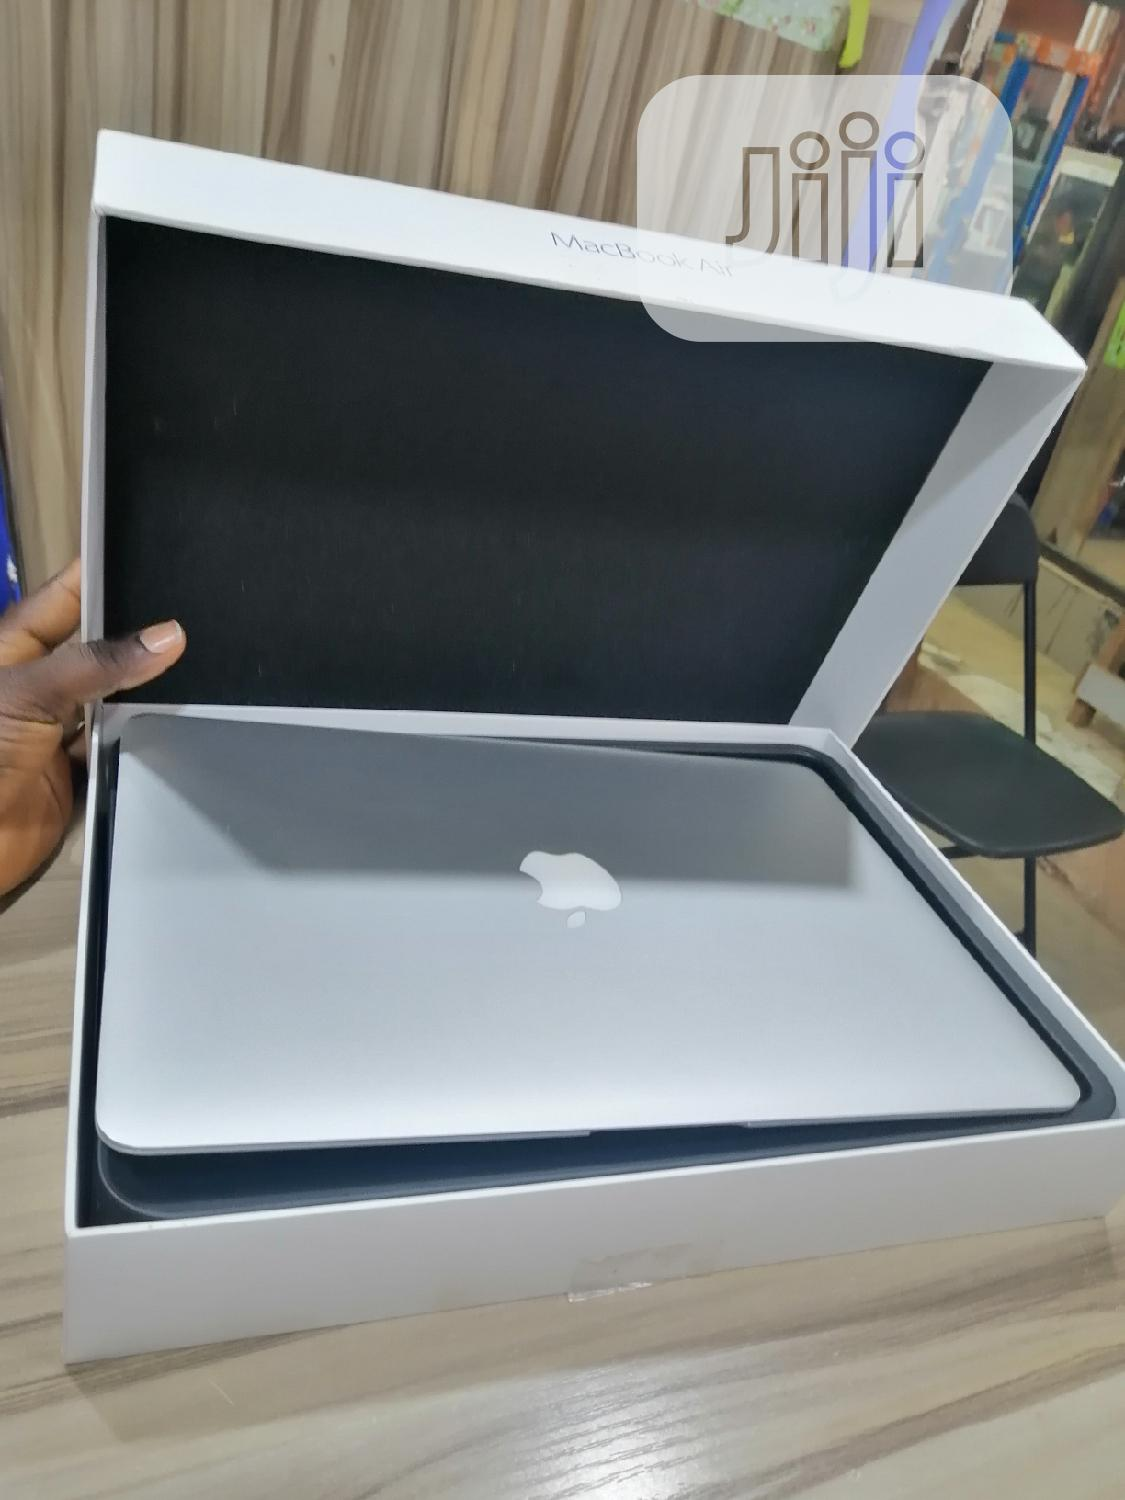 Laptop Apple MacBook Air 8GB Intel Core i7 SSD 256GB   Laptops & Computers for sale in Wuse, Abuja (FCT) State, Nigeria